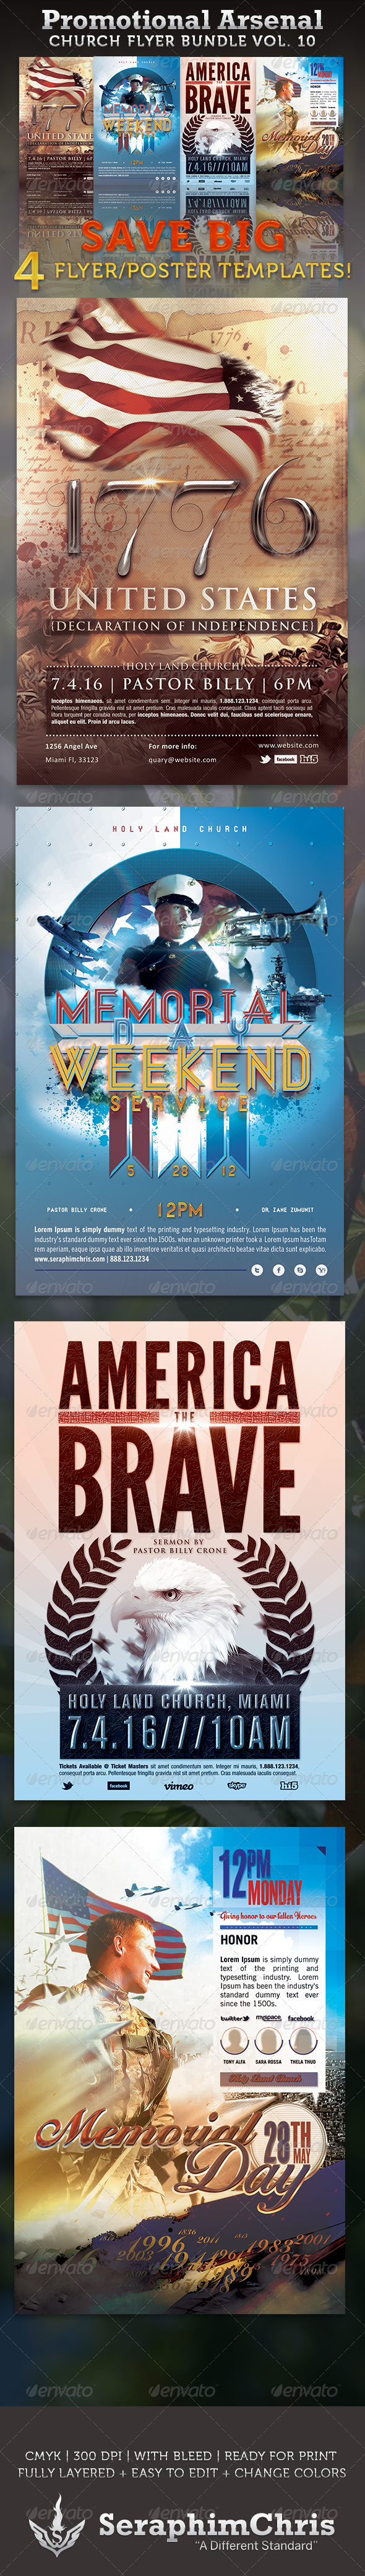 GraphicRiver Promotional Arsenal Church Flyer Bundle 10 3305155